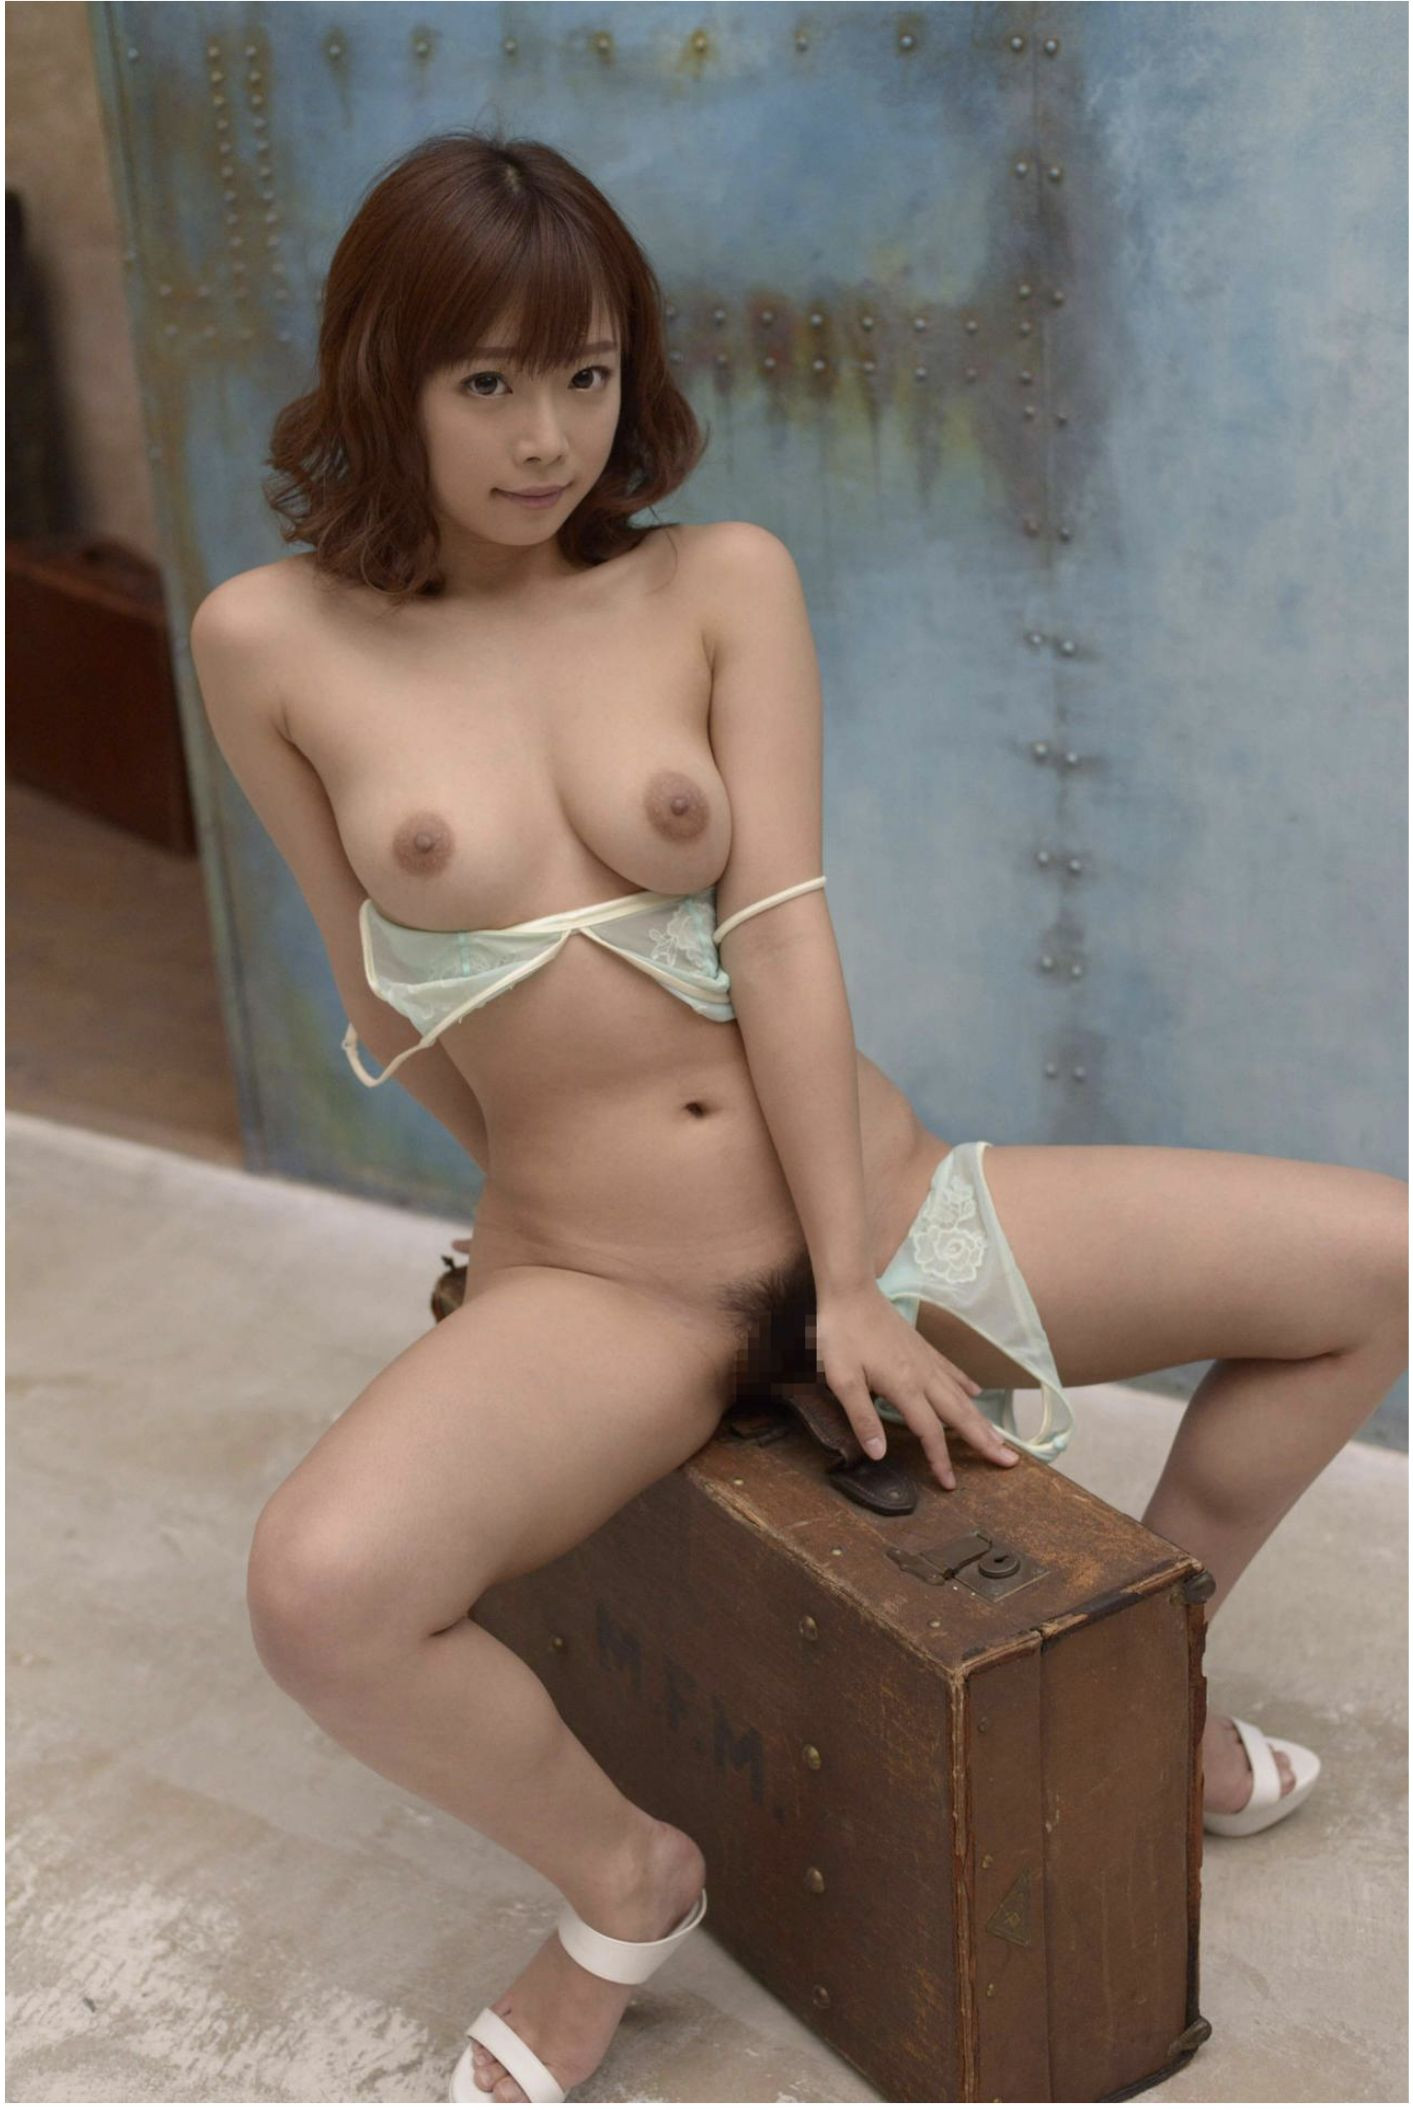 SOFT ON DEMAND GRAVURE COLLECTION 紗倉まな04 photo 103